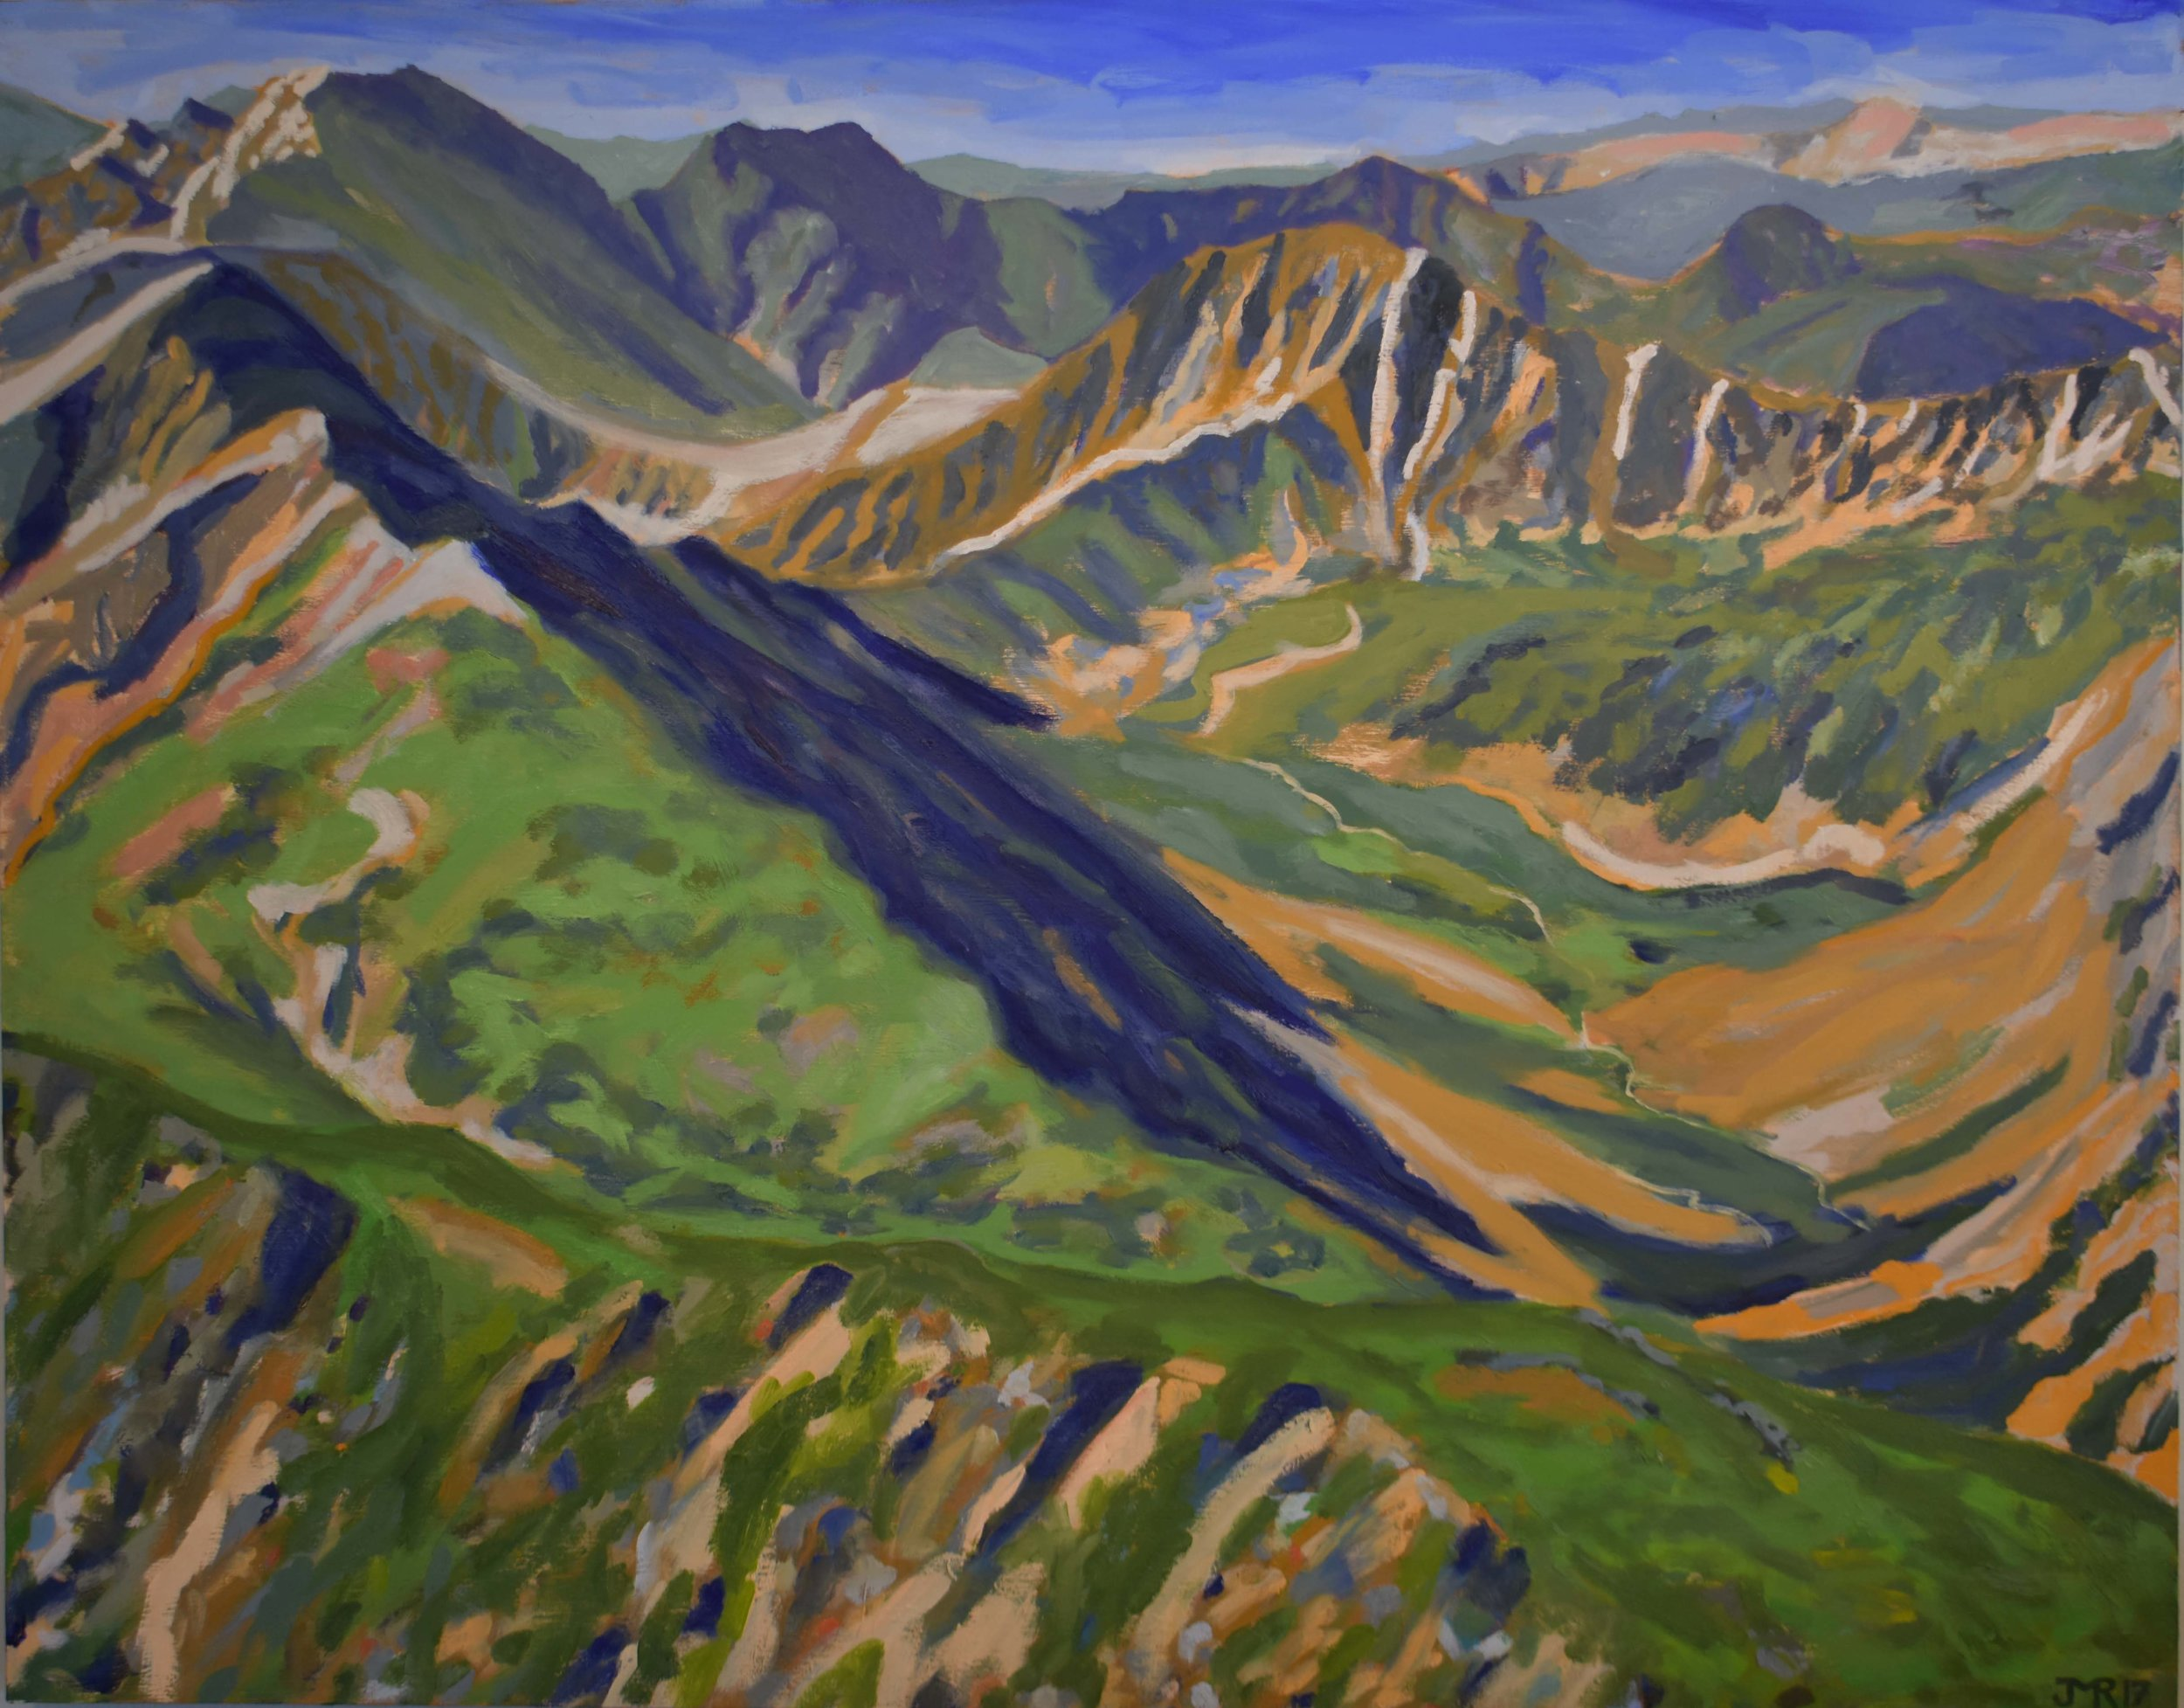 """Summit view from the Rooftop of Colorado - Mt. Elbert, 48"""" x 60"""", 2017"""